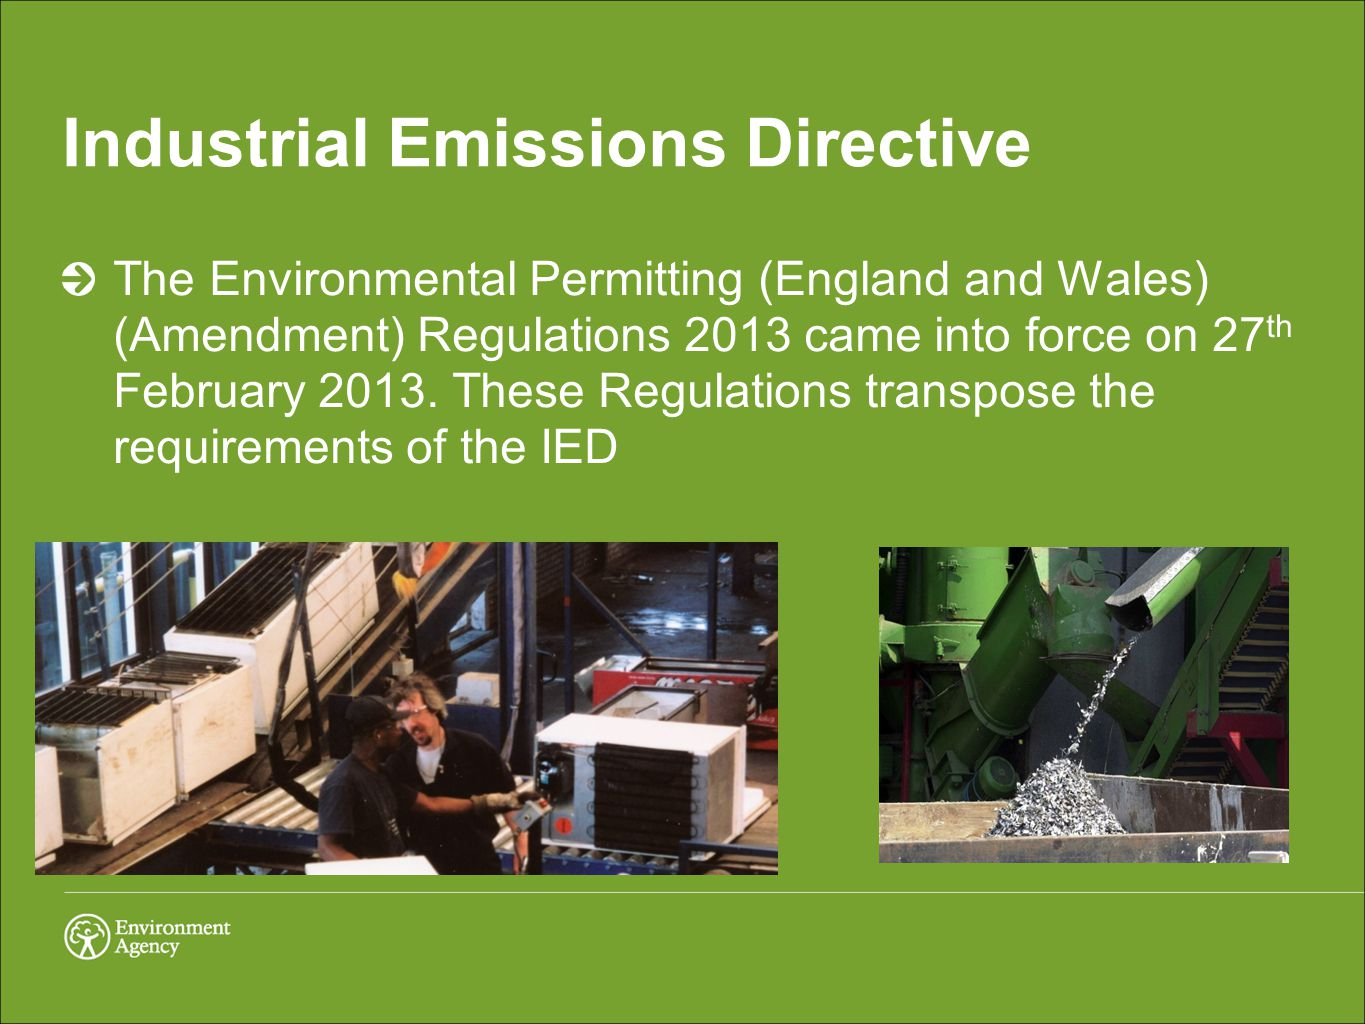 Industrial Emissions Directive This will replace 7 existing Directives (IPPC, Large Combustion Plant, Waste Incineration, Titanium Dioxide (3 directives) and Solvent Emissions) This will be implemented through the revised EPR IED will have new requirements on the installations the EA permit and will lead to a number of new EPR installations